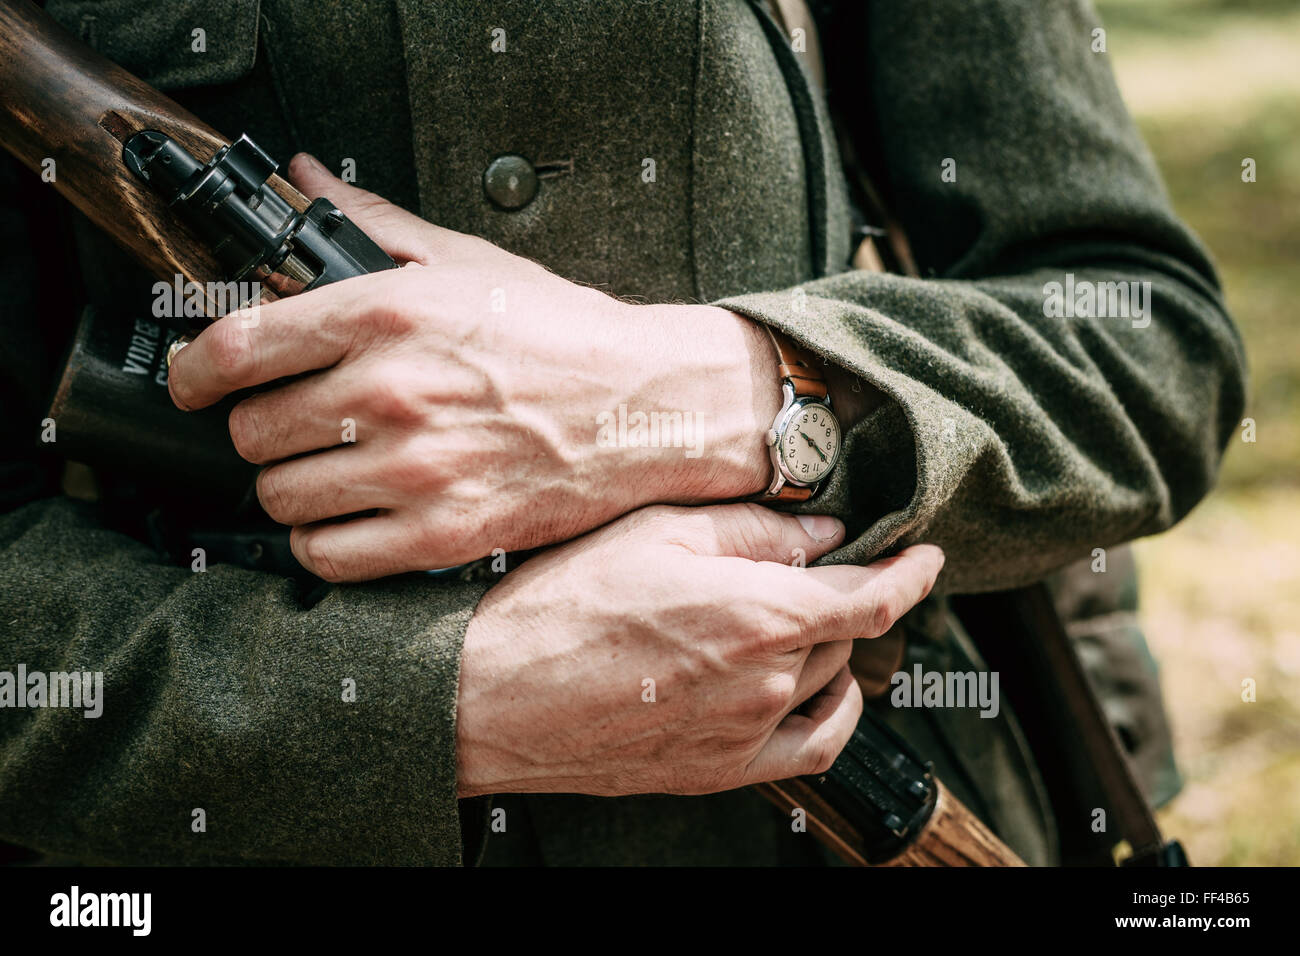 Close up of german military uniform of a German soldier. Unidentified re-enactor dressed as World War II German - Stock Image